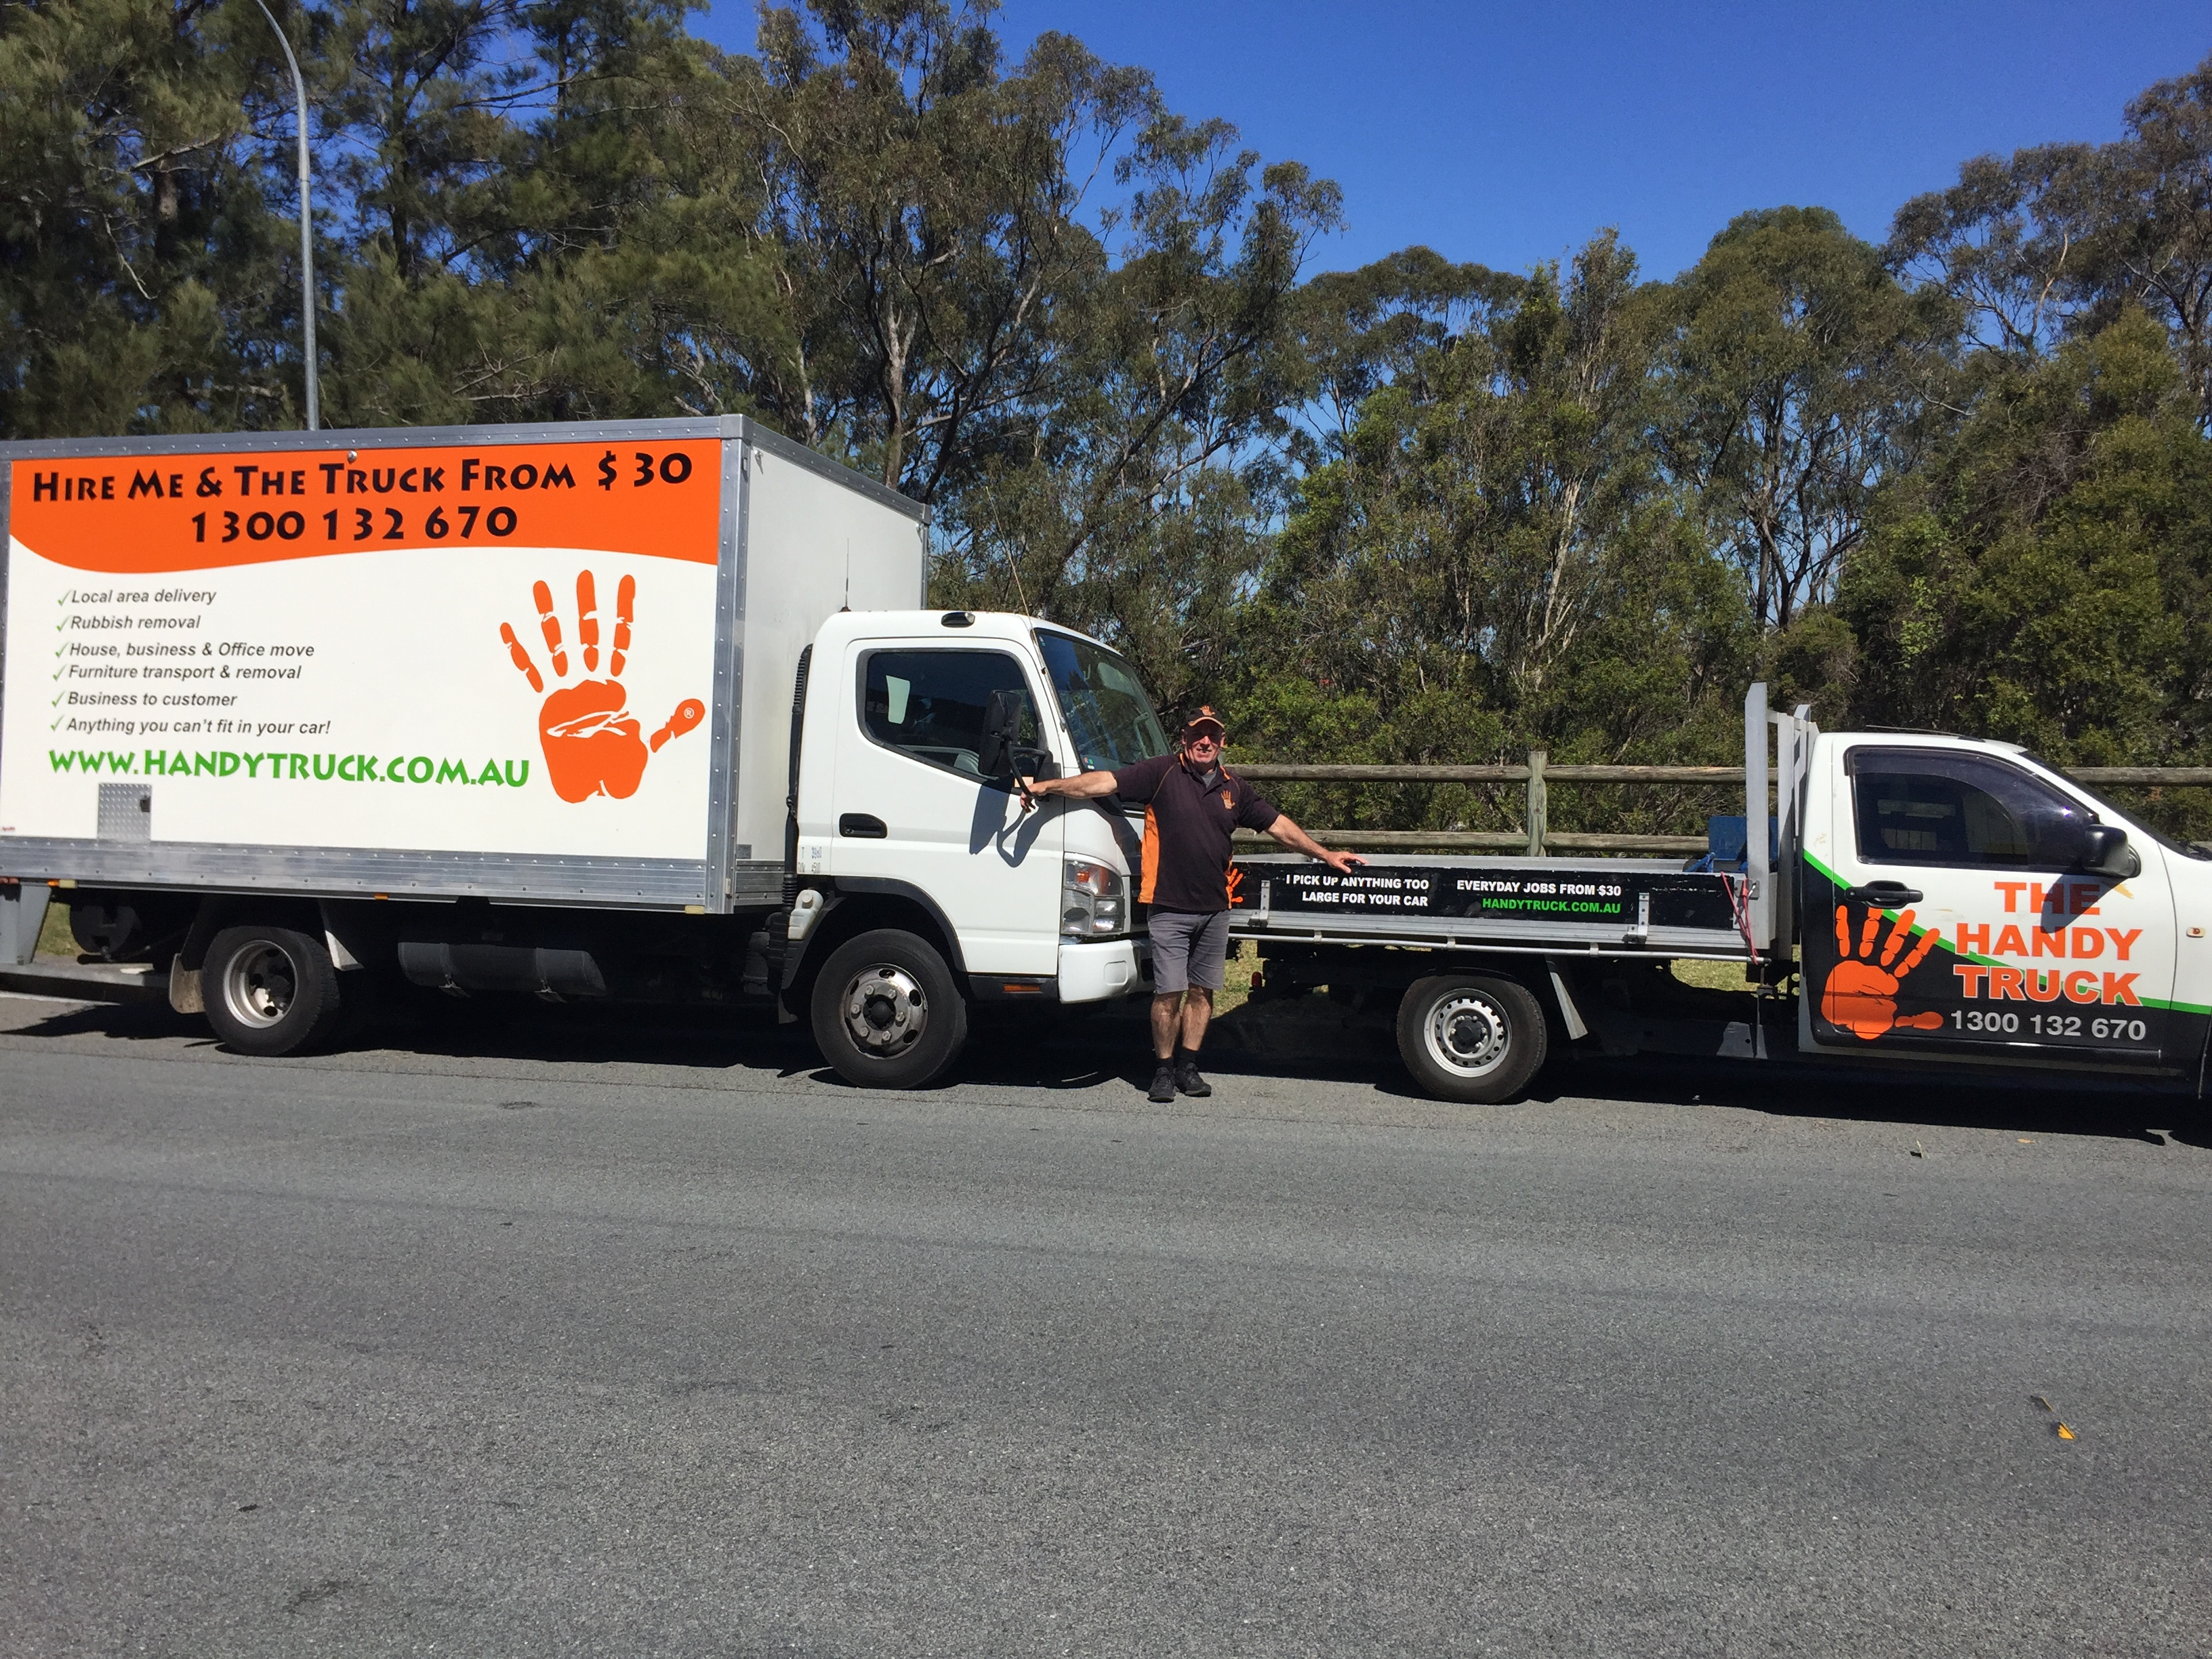 Your delivery and removalist service in Carindale